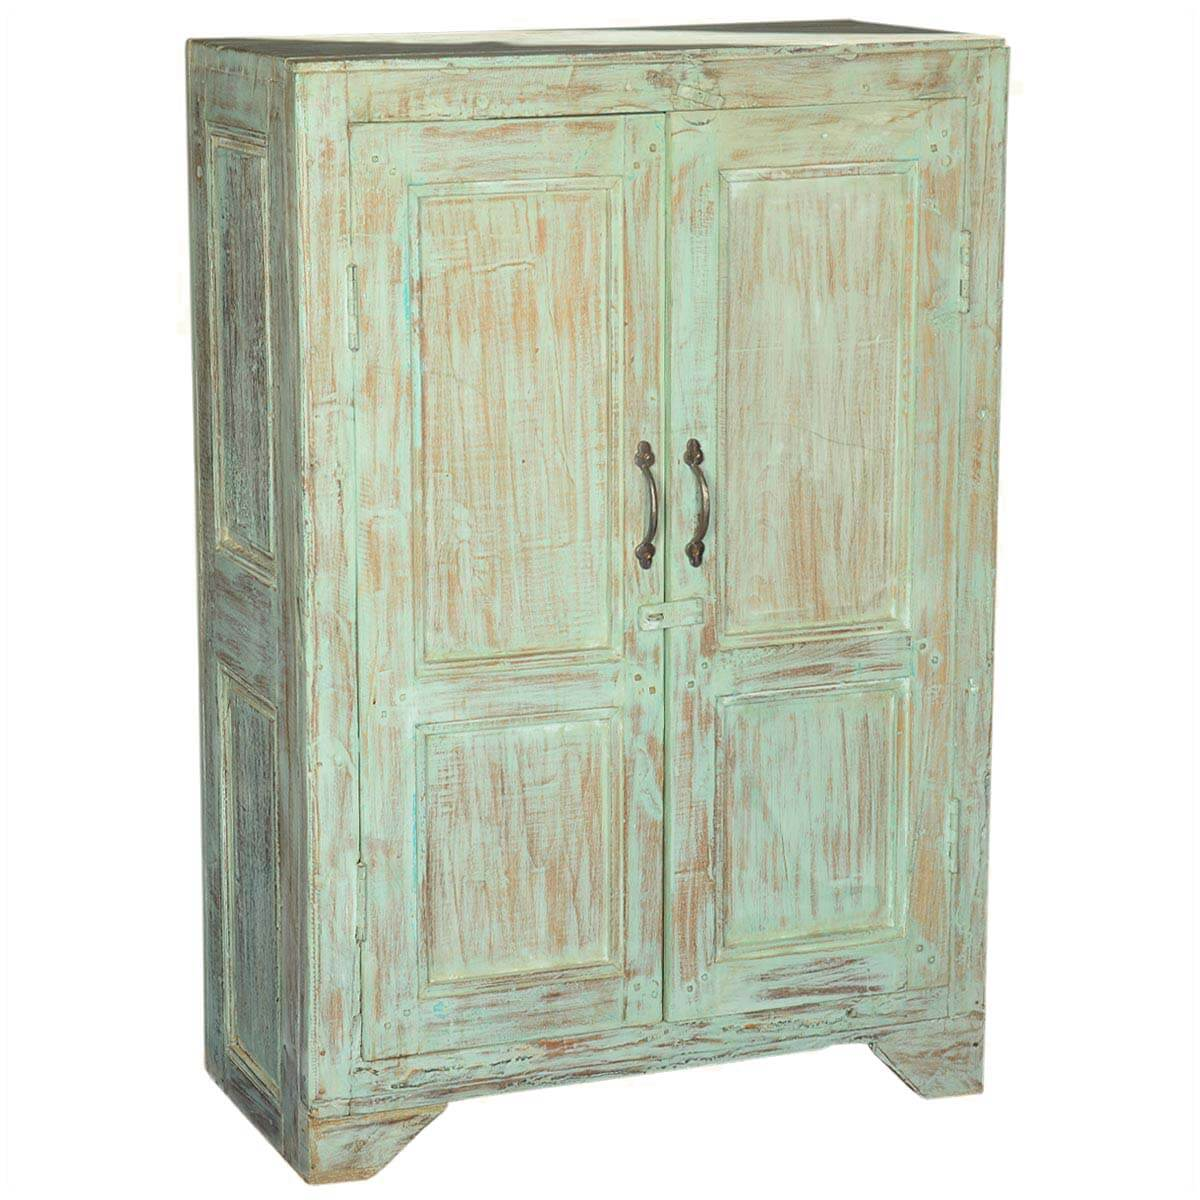 julian rustic reclaimed wood storage cabinet 2 door small armoire. Black Bedroom Furniture Sets. Home Design Ideas